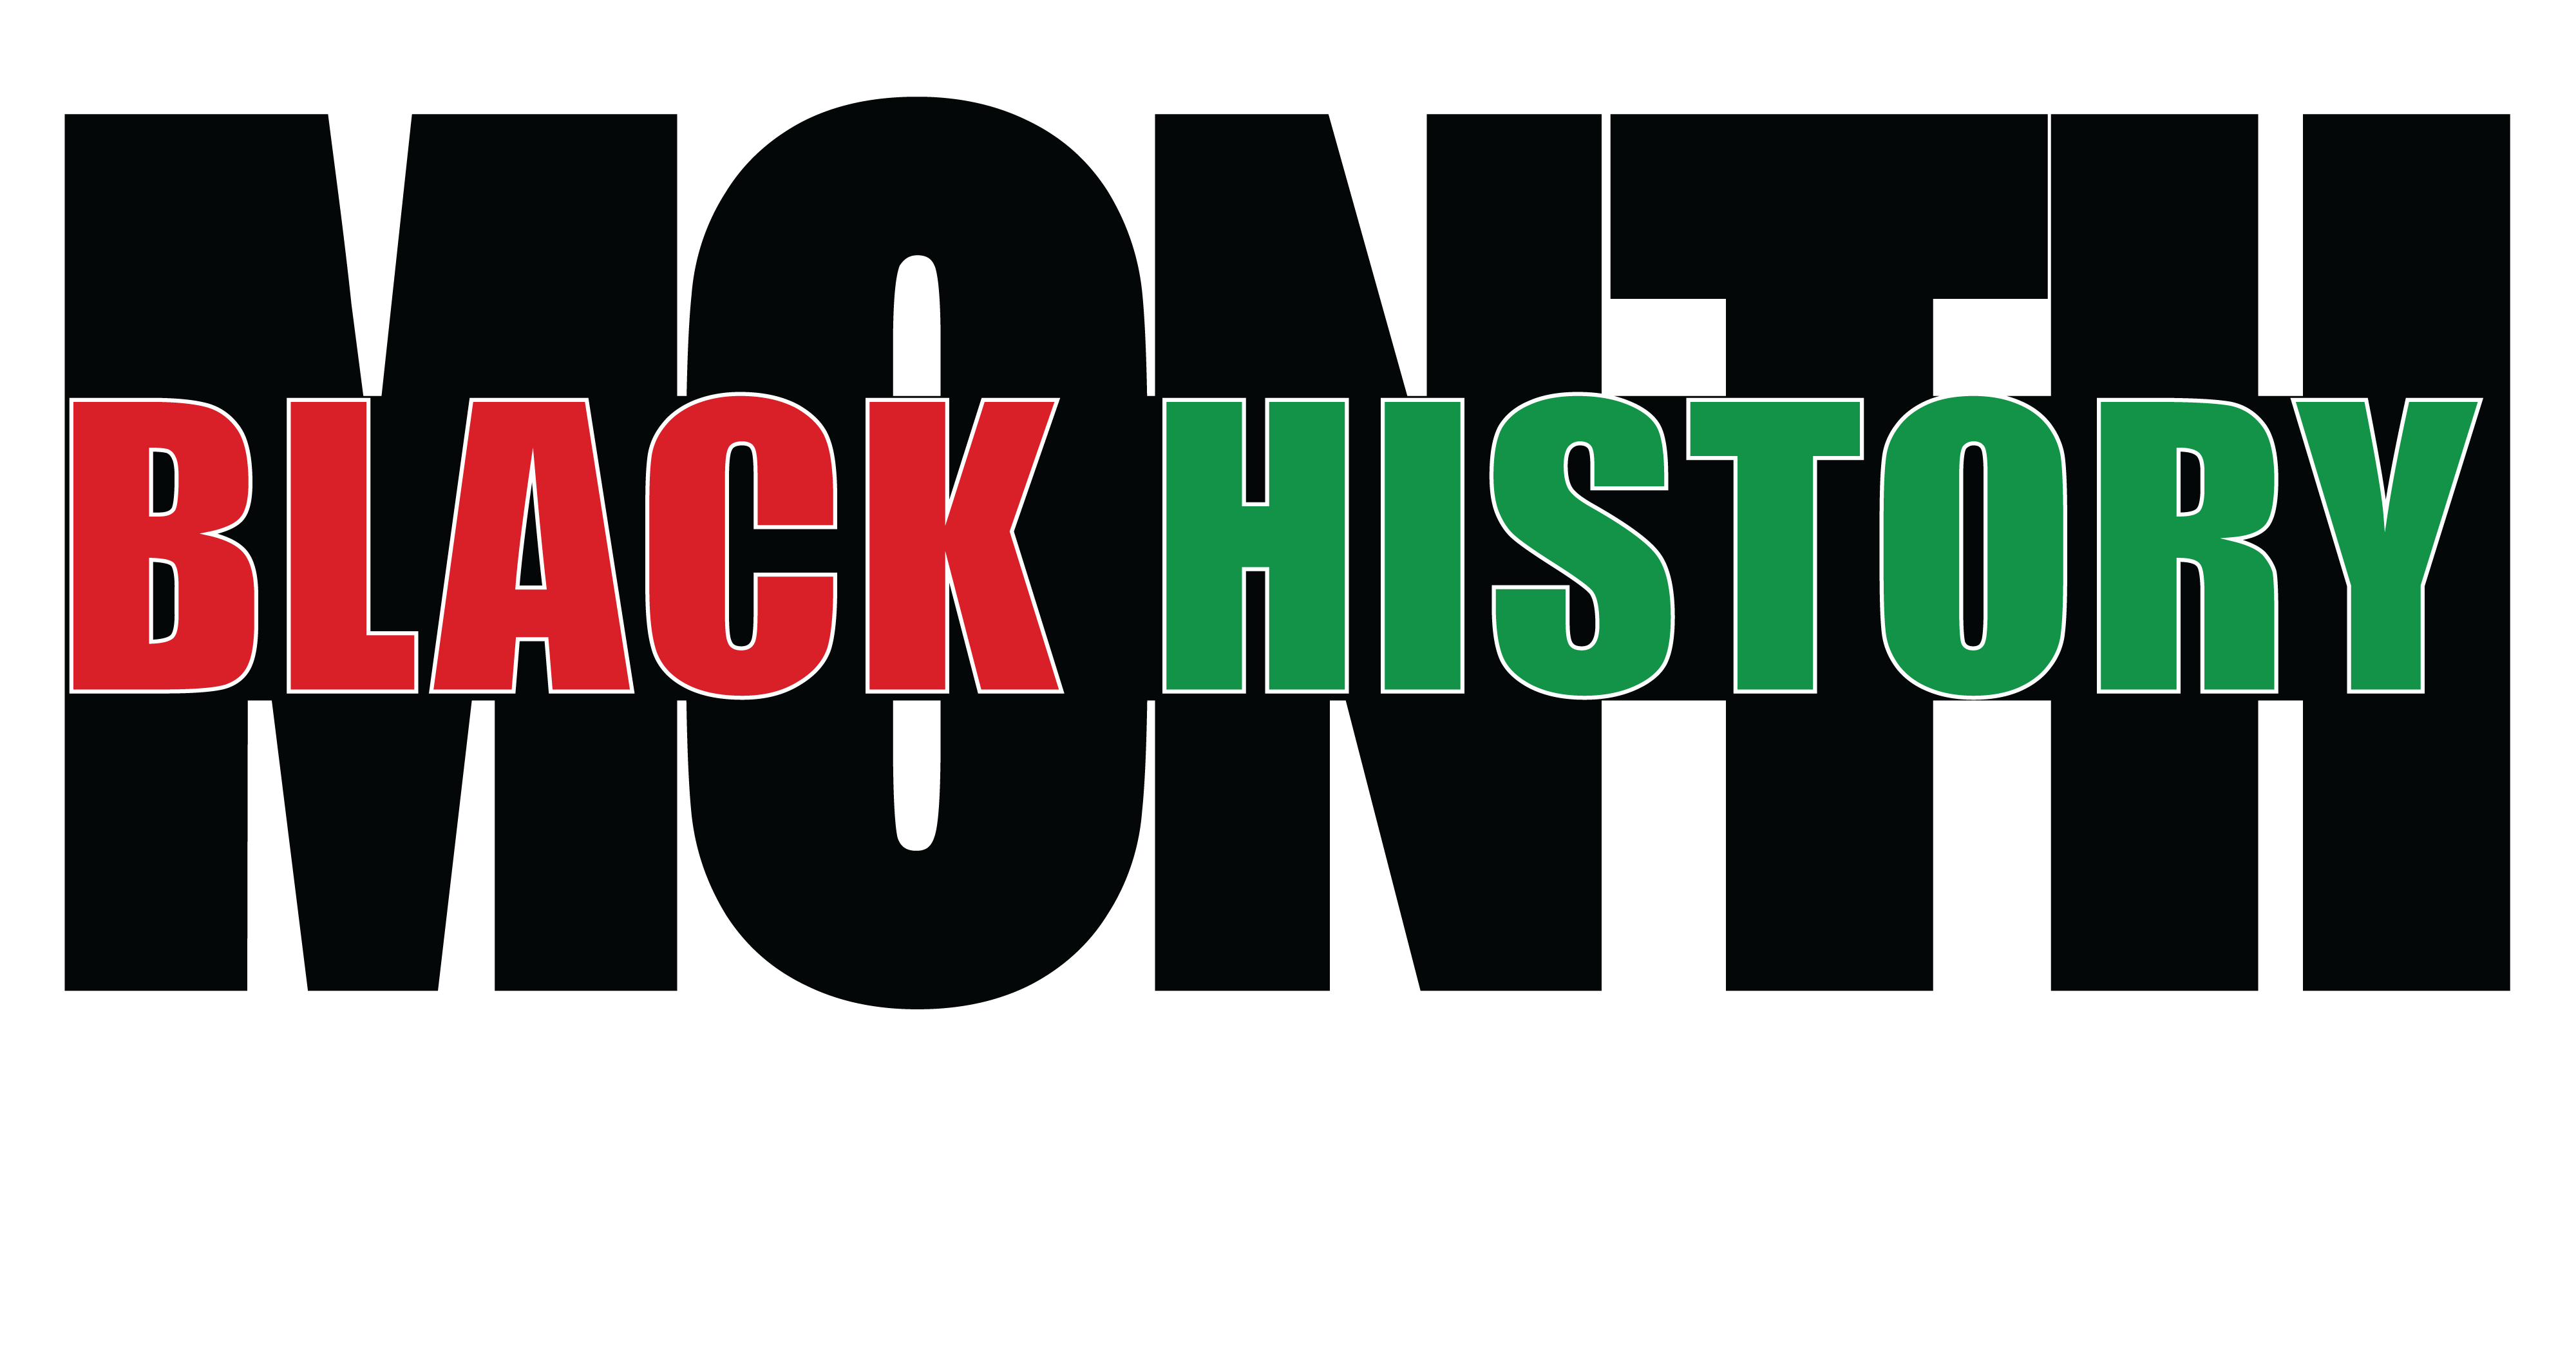 Black History Month 2020 Clipart 4000x2099